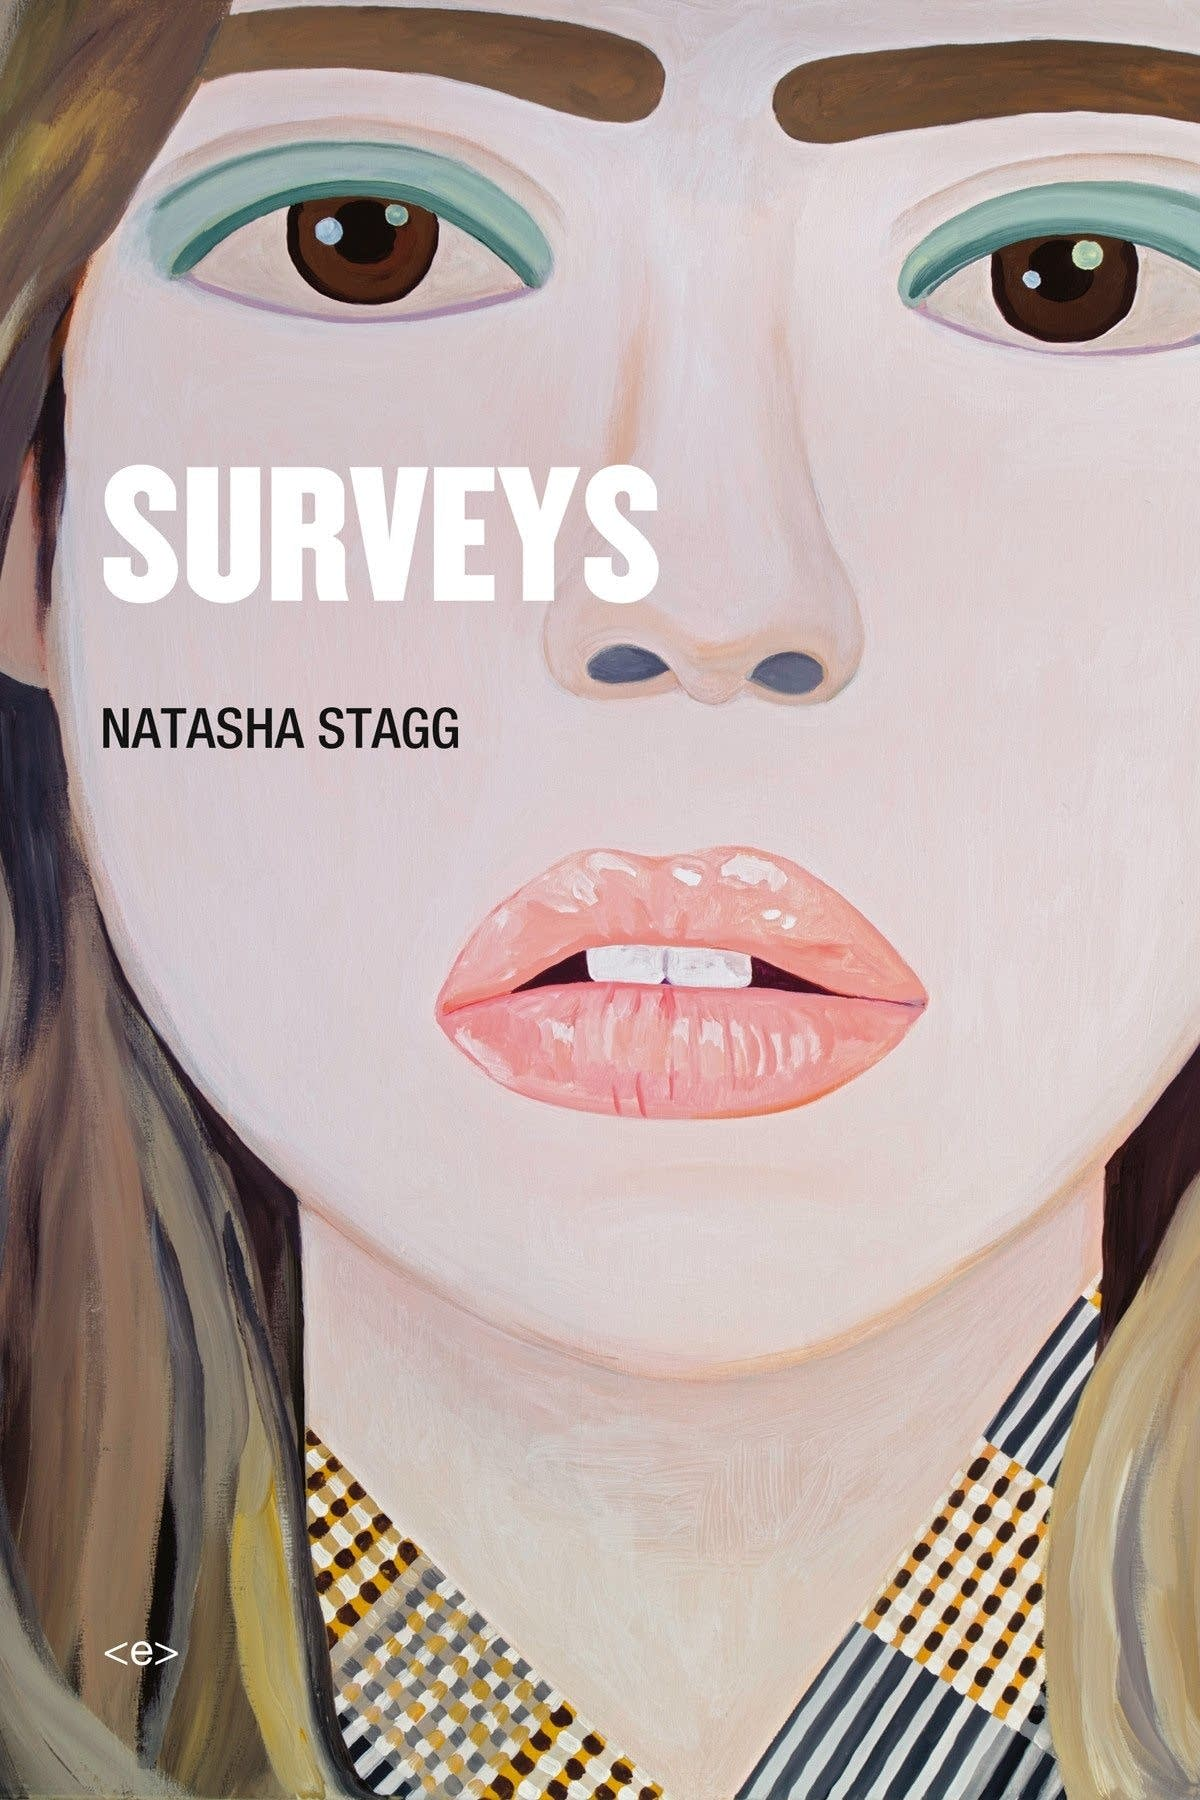 'Surveys' by Natasha Stagg